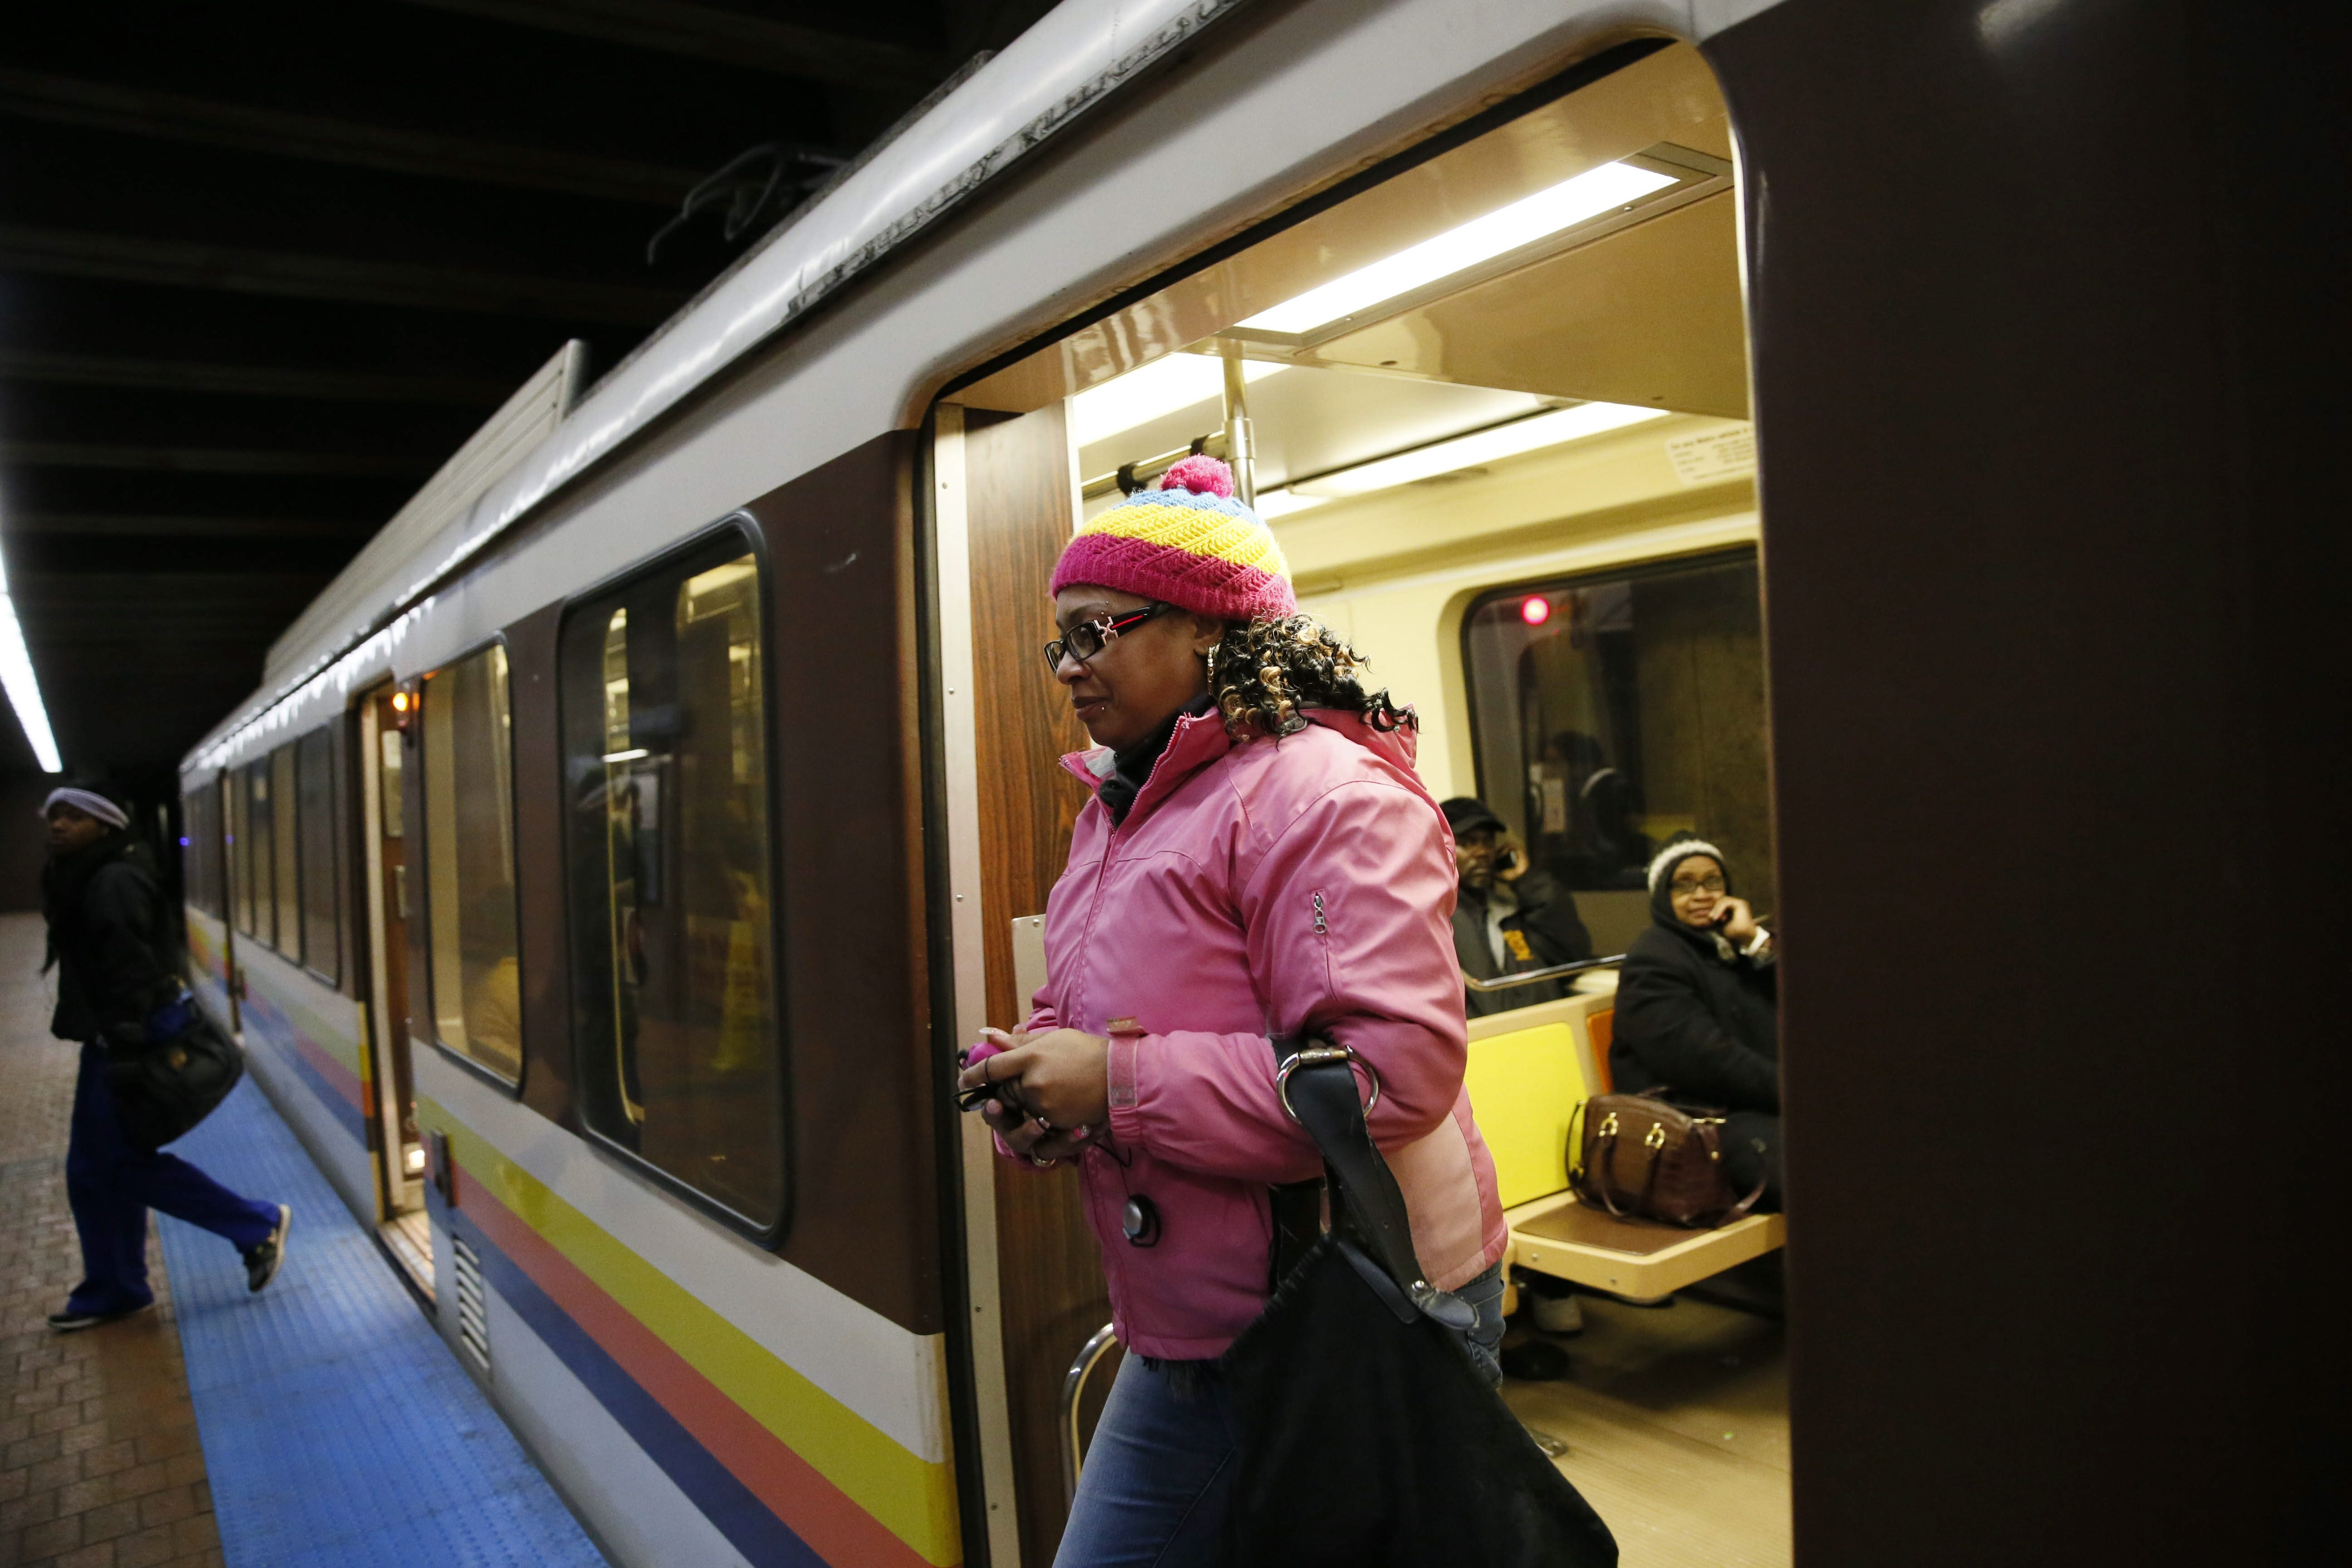 Teraysa Smith, a senior medical biller at Roswell Park Cancer Institute, walks off the Metro Rail at the Medical Campus Station on her way to work early Tuesday. Smith, like other commuters, considers the 20-minute delays in train frequency inconvenient.